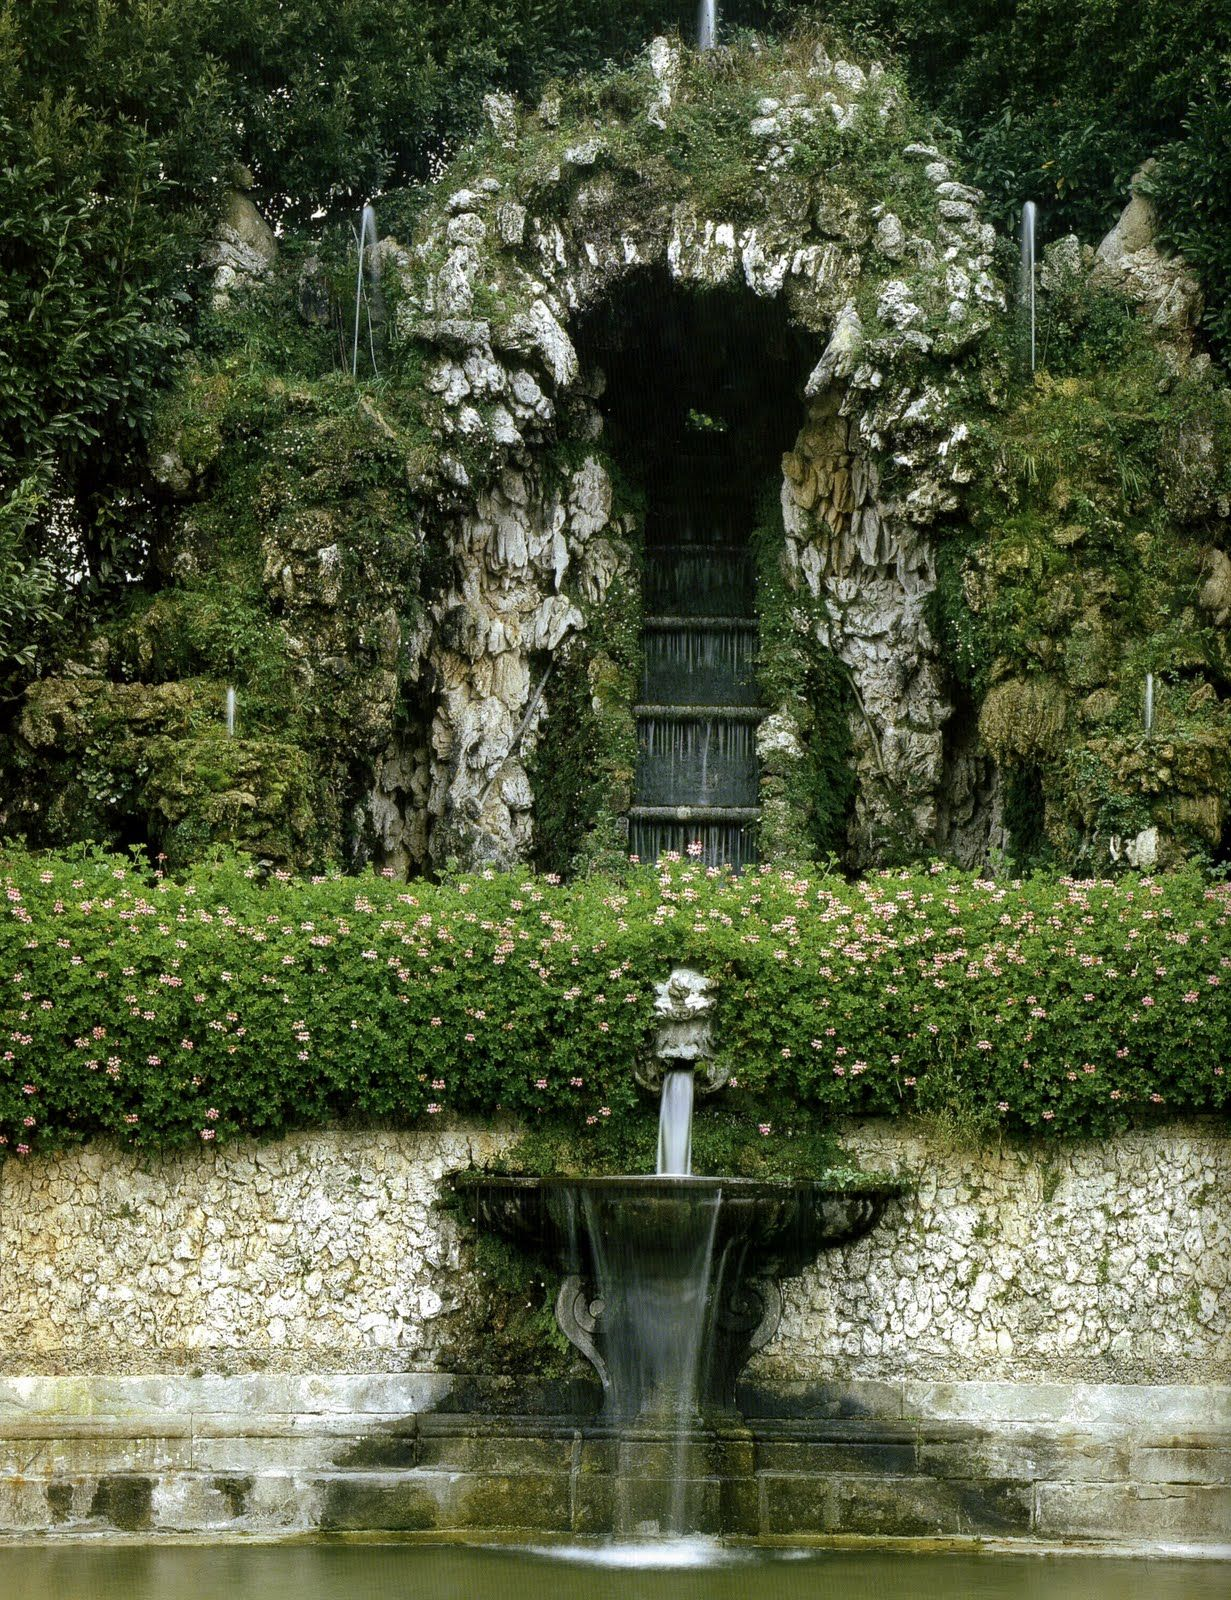 AESTHETICALLY THINKING: THE SOUND OF RUNNING WATER... Wall